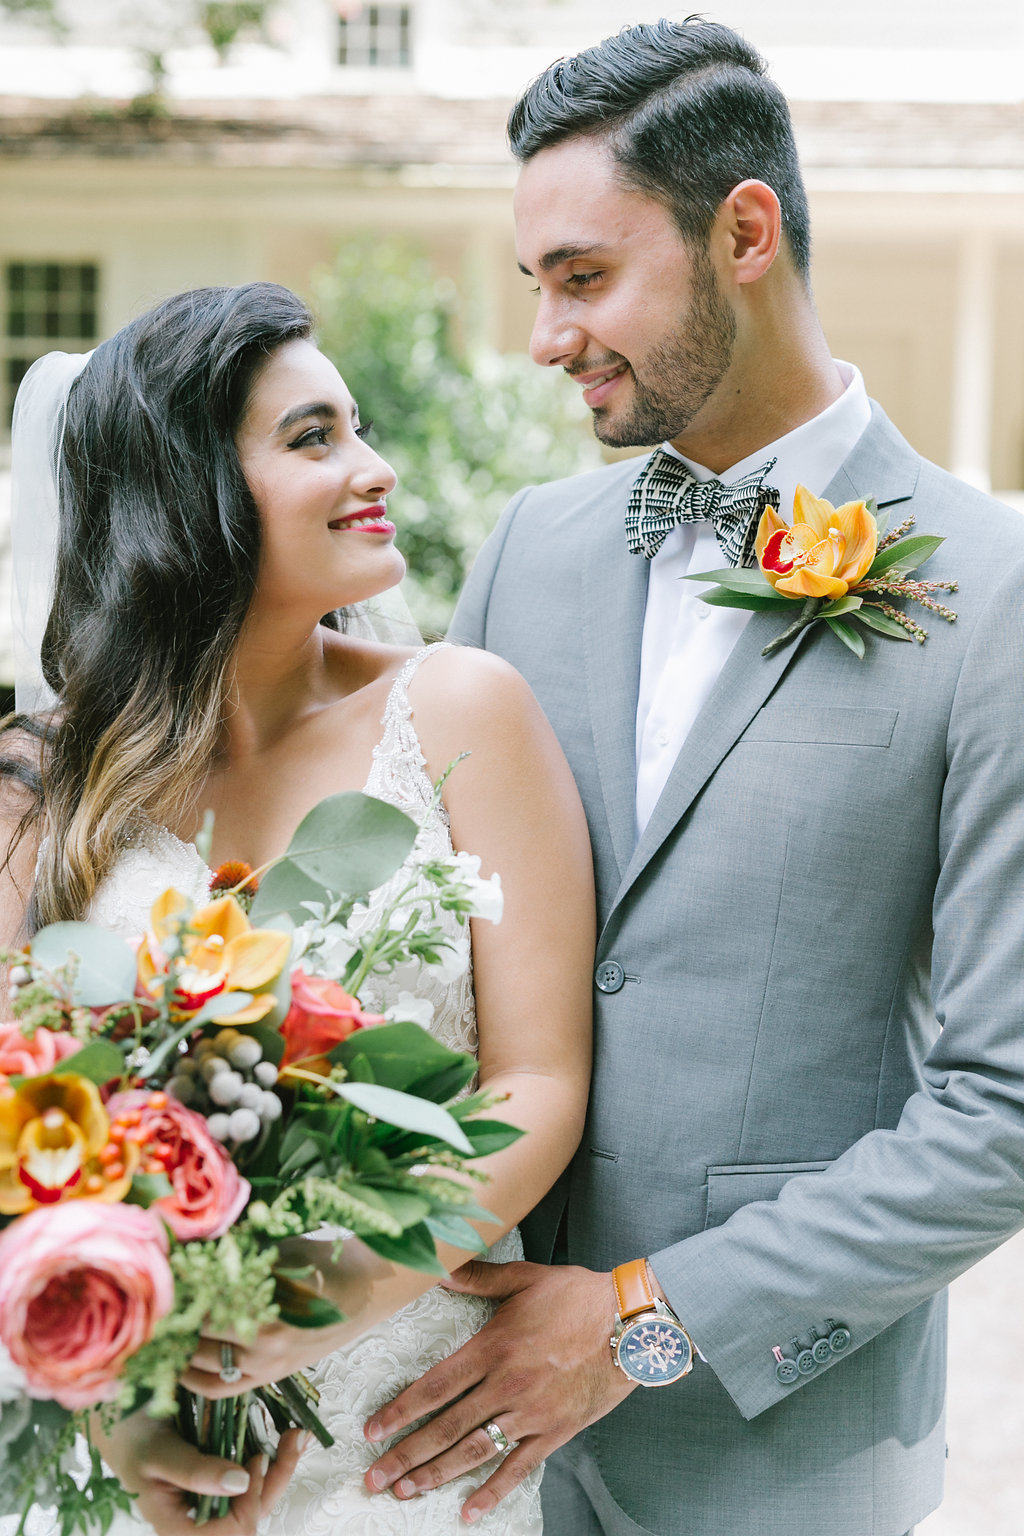 weddings with tropical color schemes - http://ruffledblog.com/vibrant-atlanta-wedding-inspiration-with-rust-accents